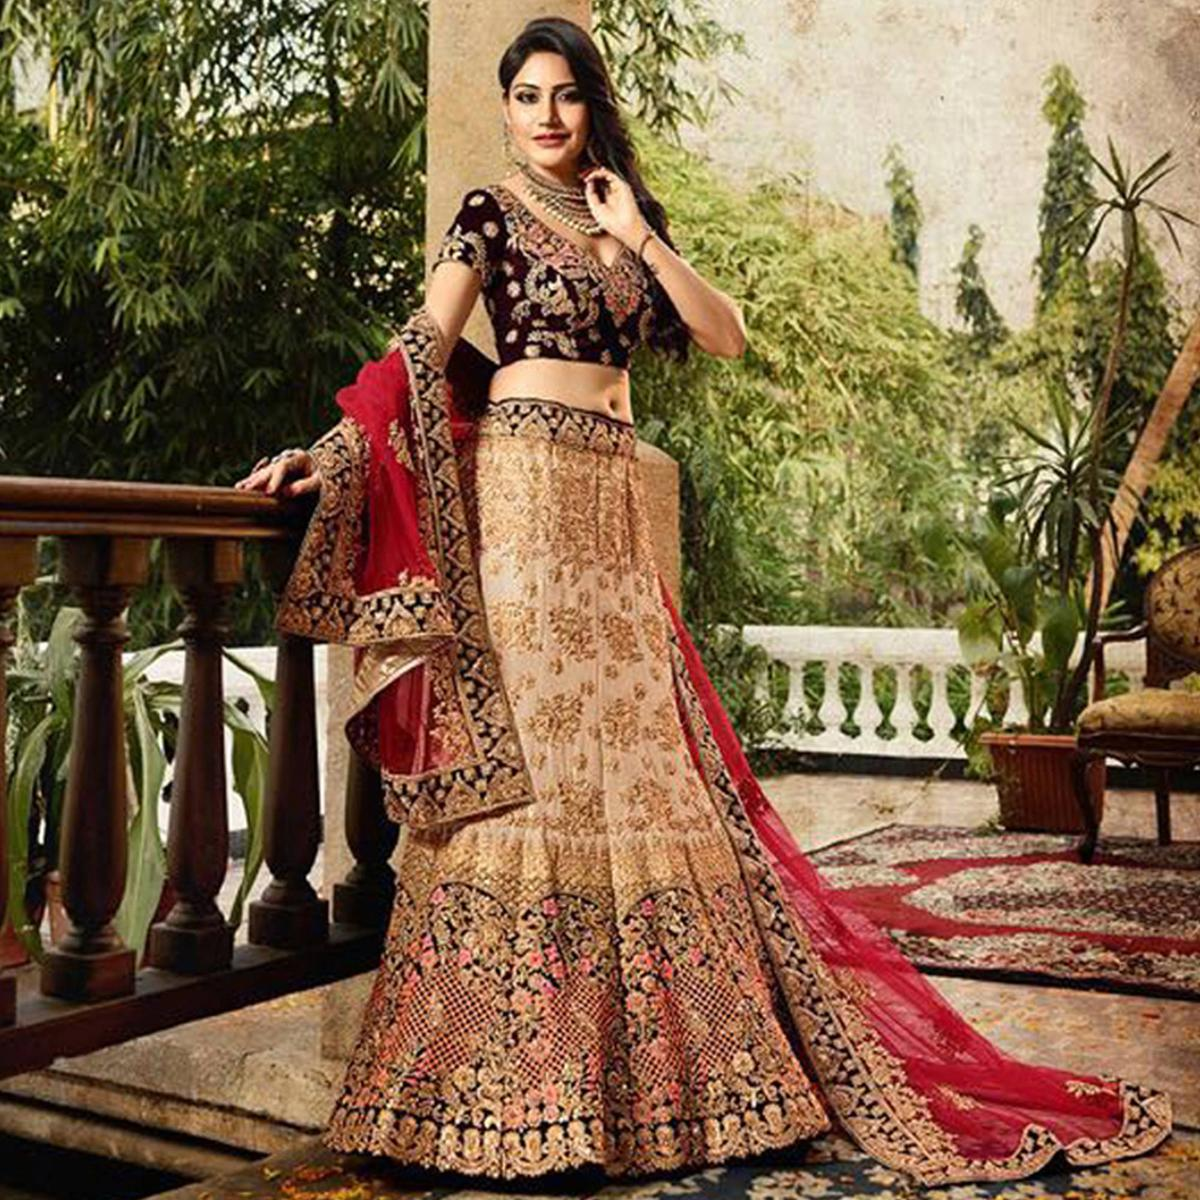 a49530ac69 Buy Innovative Beige-Maroon Colored Designer Partywear Embroidered Banglori  Silk Lehenga Choli for women's online India, Best Prices, Reviews -  Peachmode